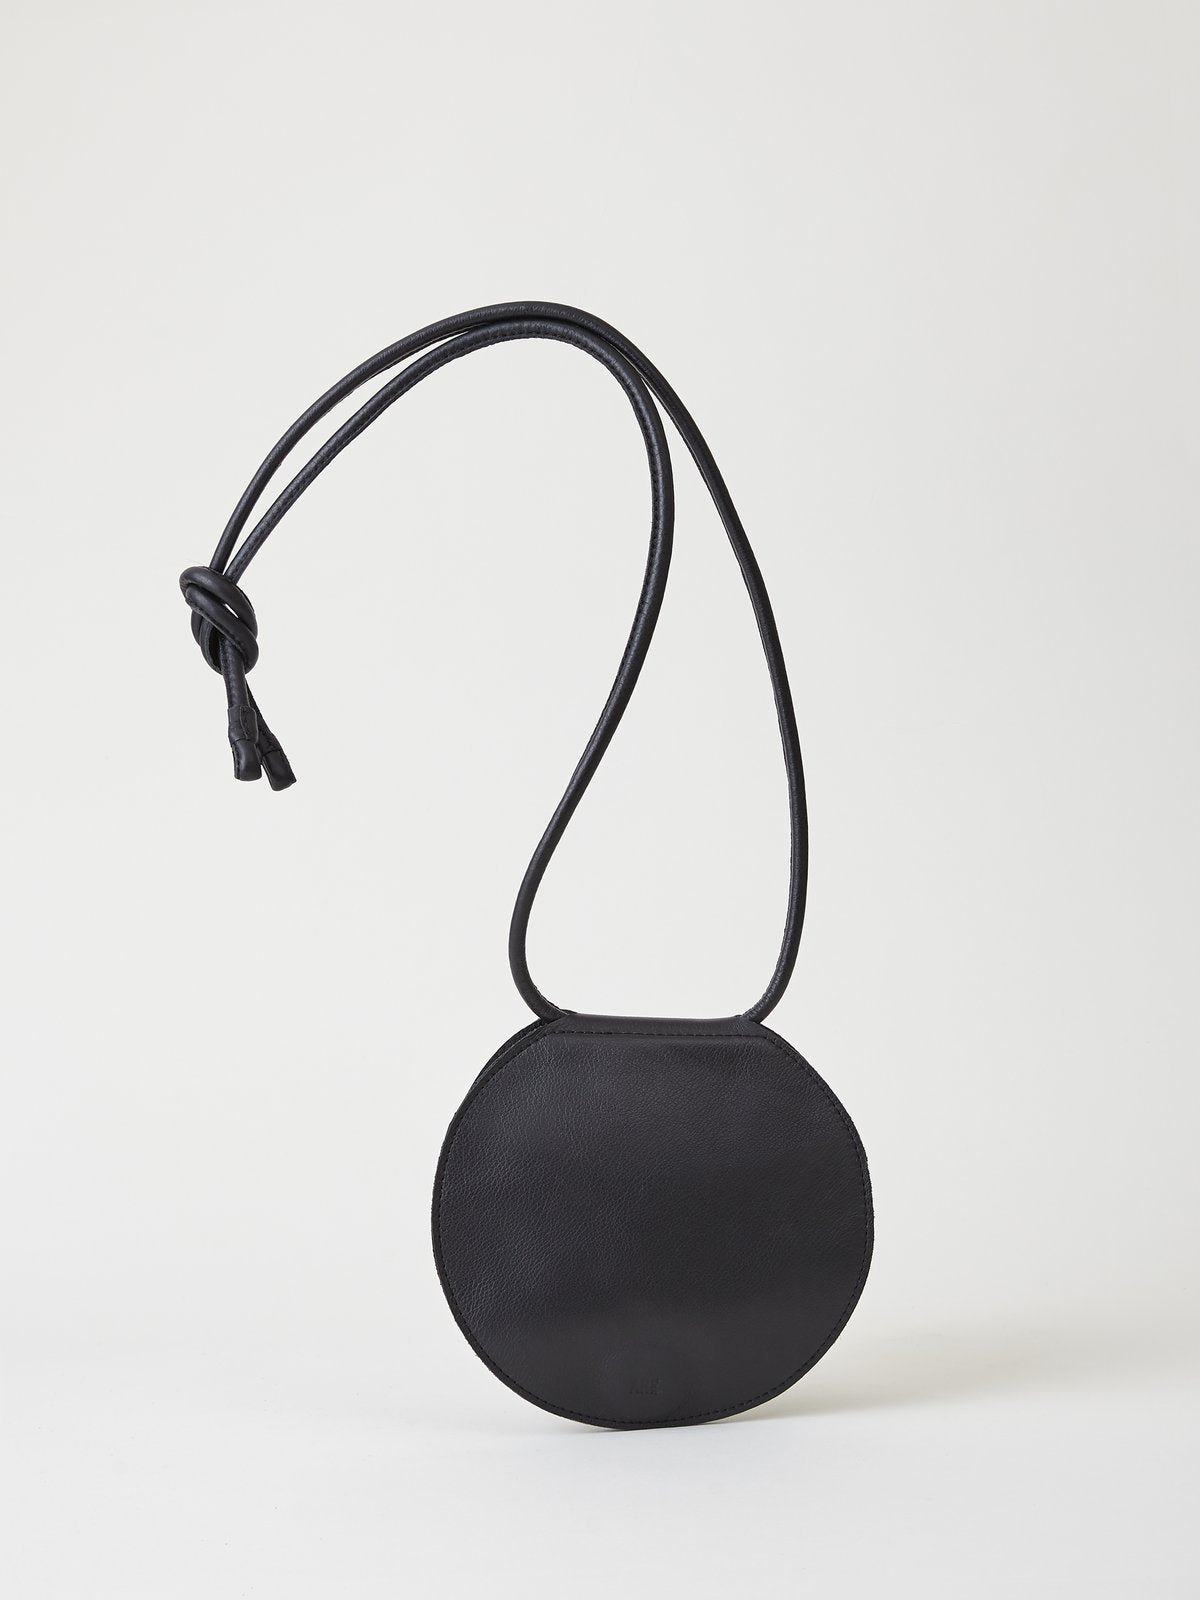 Disc Purse in black - Are Studio